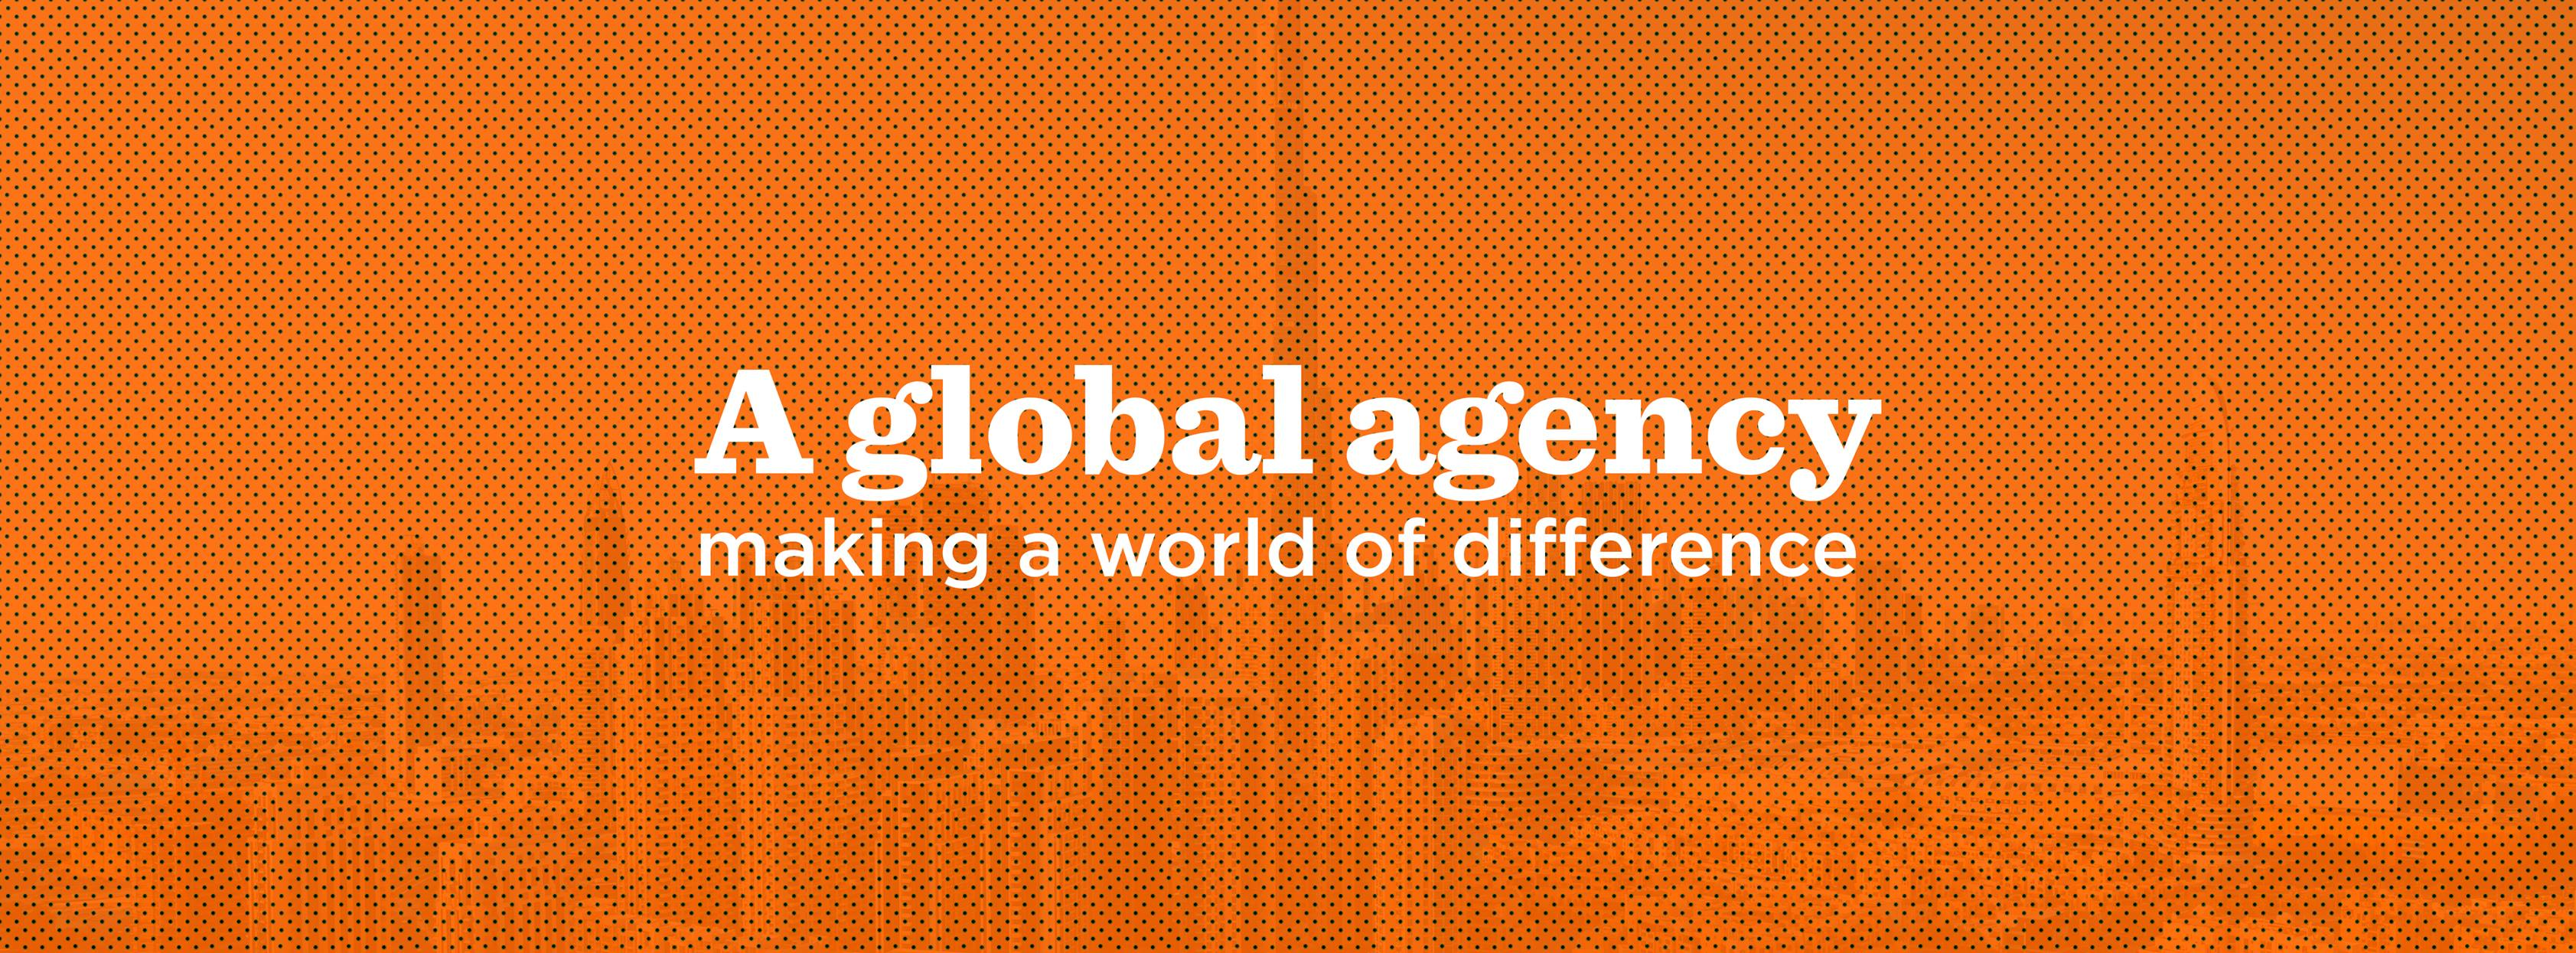 leading-content-marketing-agencies-in-the-world-crowd